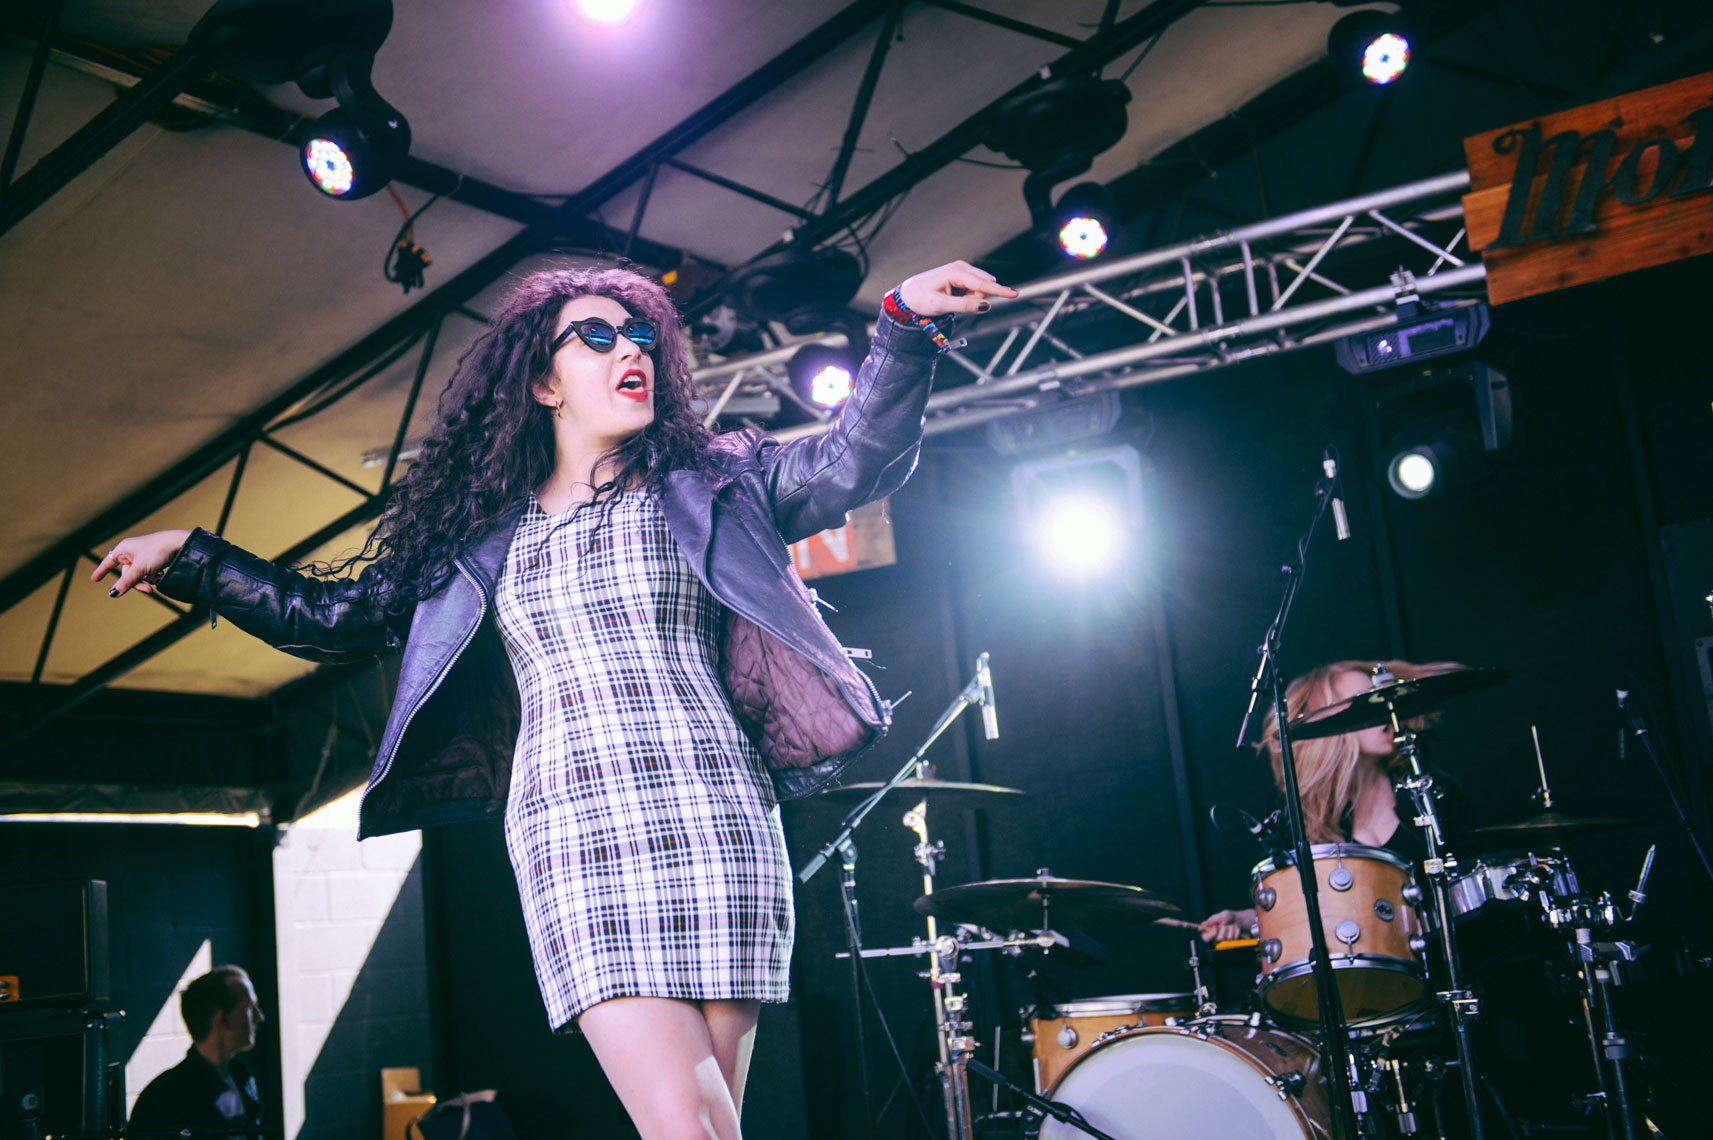 Charlie XCX at SXSW